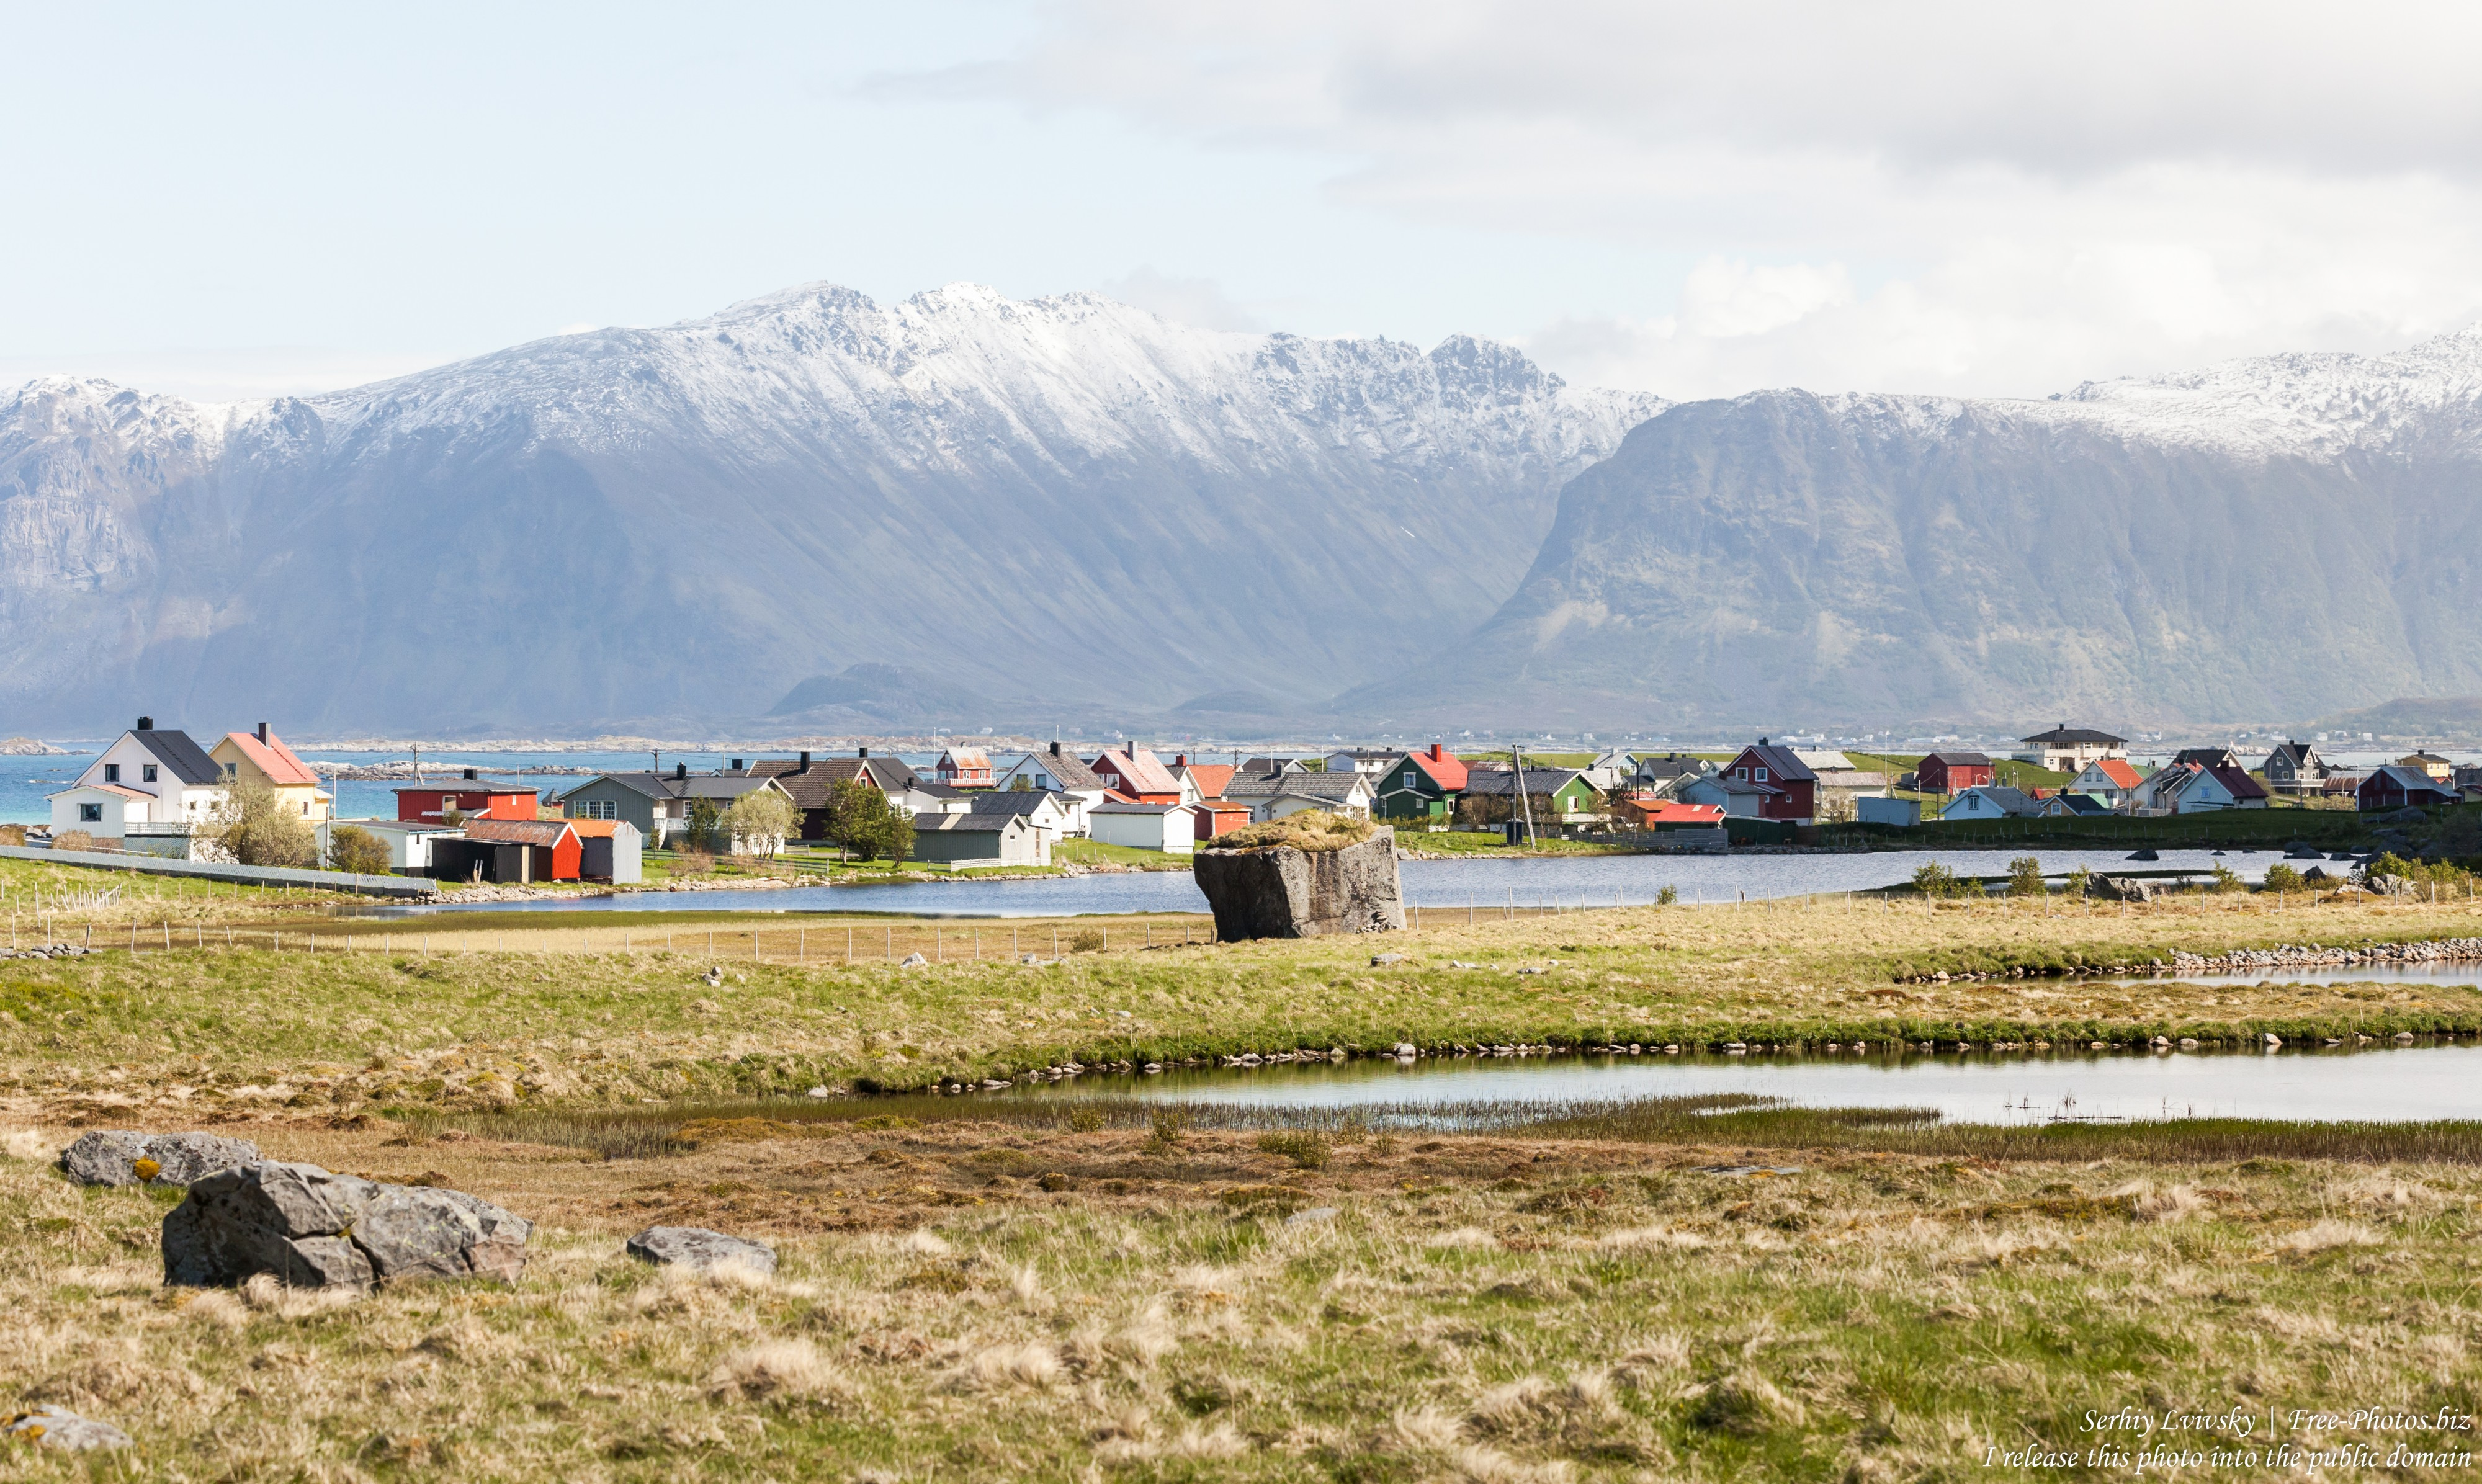 Lofoten, Norway photographed in June 2018 by Serhiy Lvivsky, picture 12